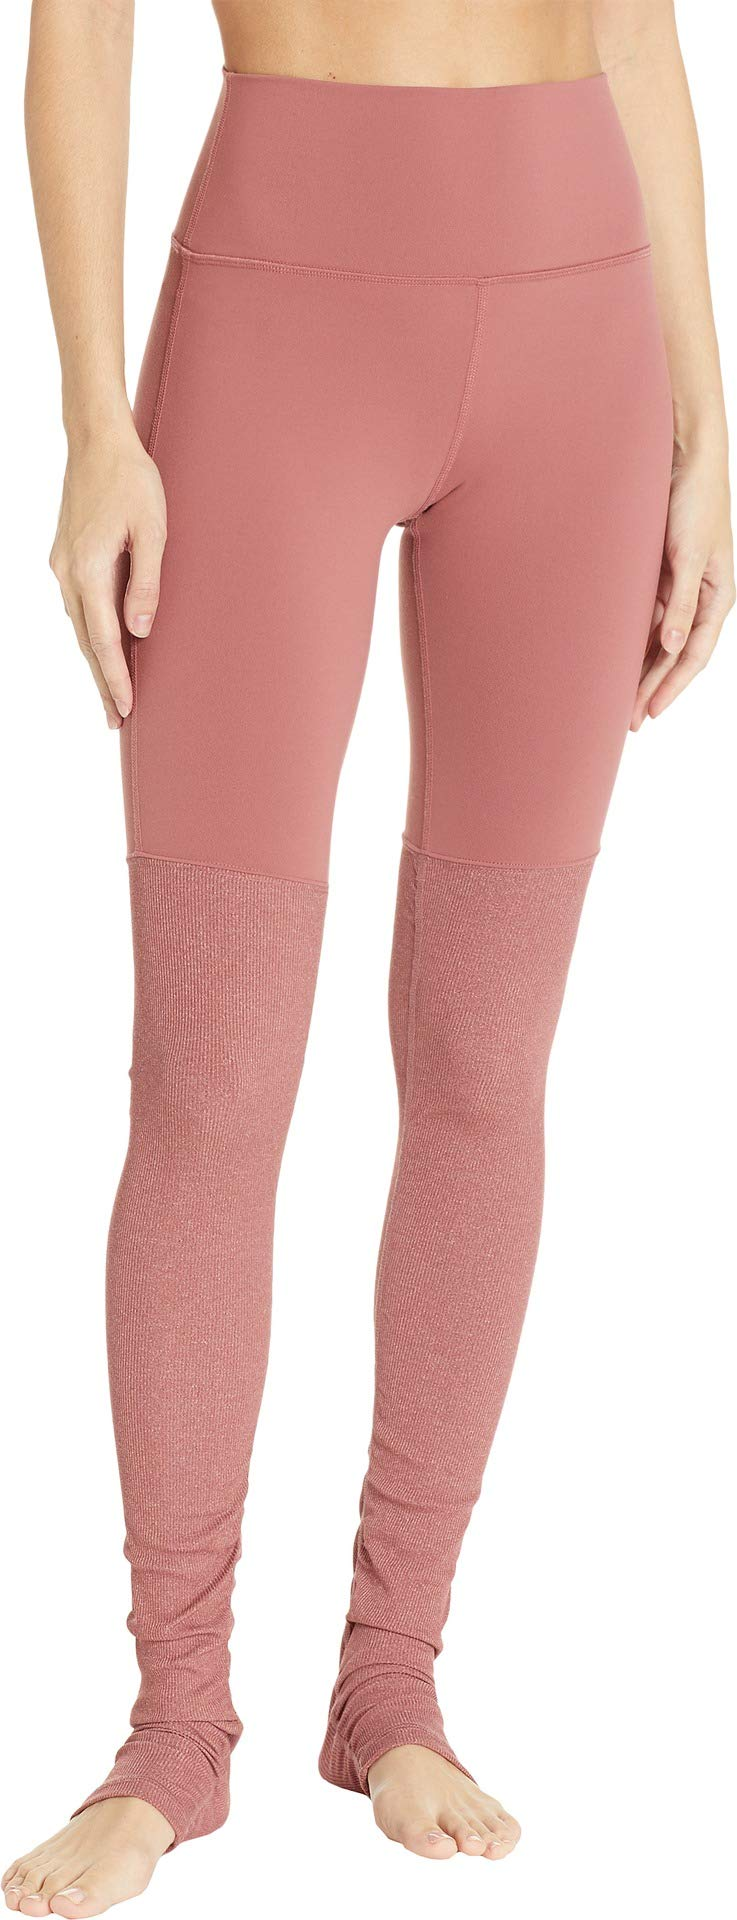 ALO Women's High Waisted Goddess Leggings Rosewood Small 33 by ALO Sport (Image #1)